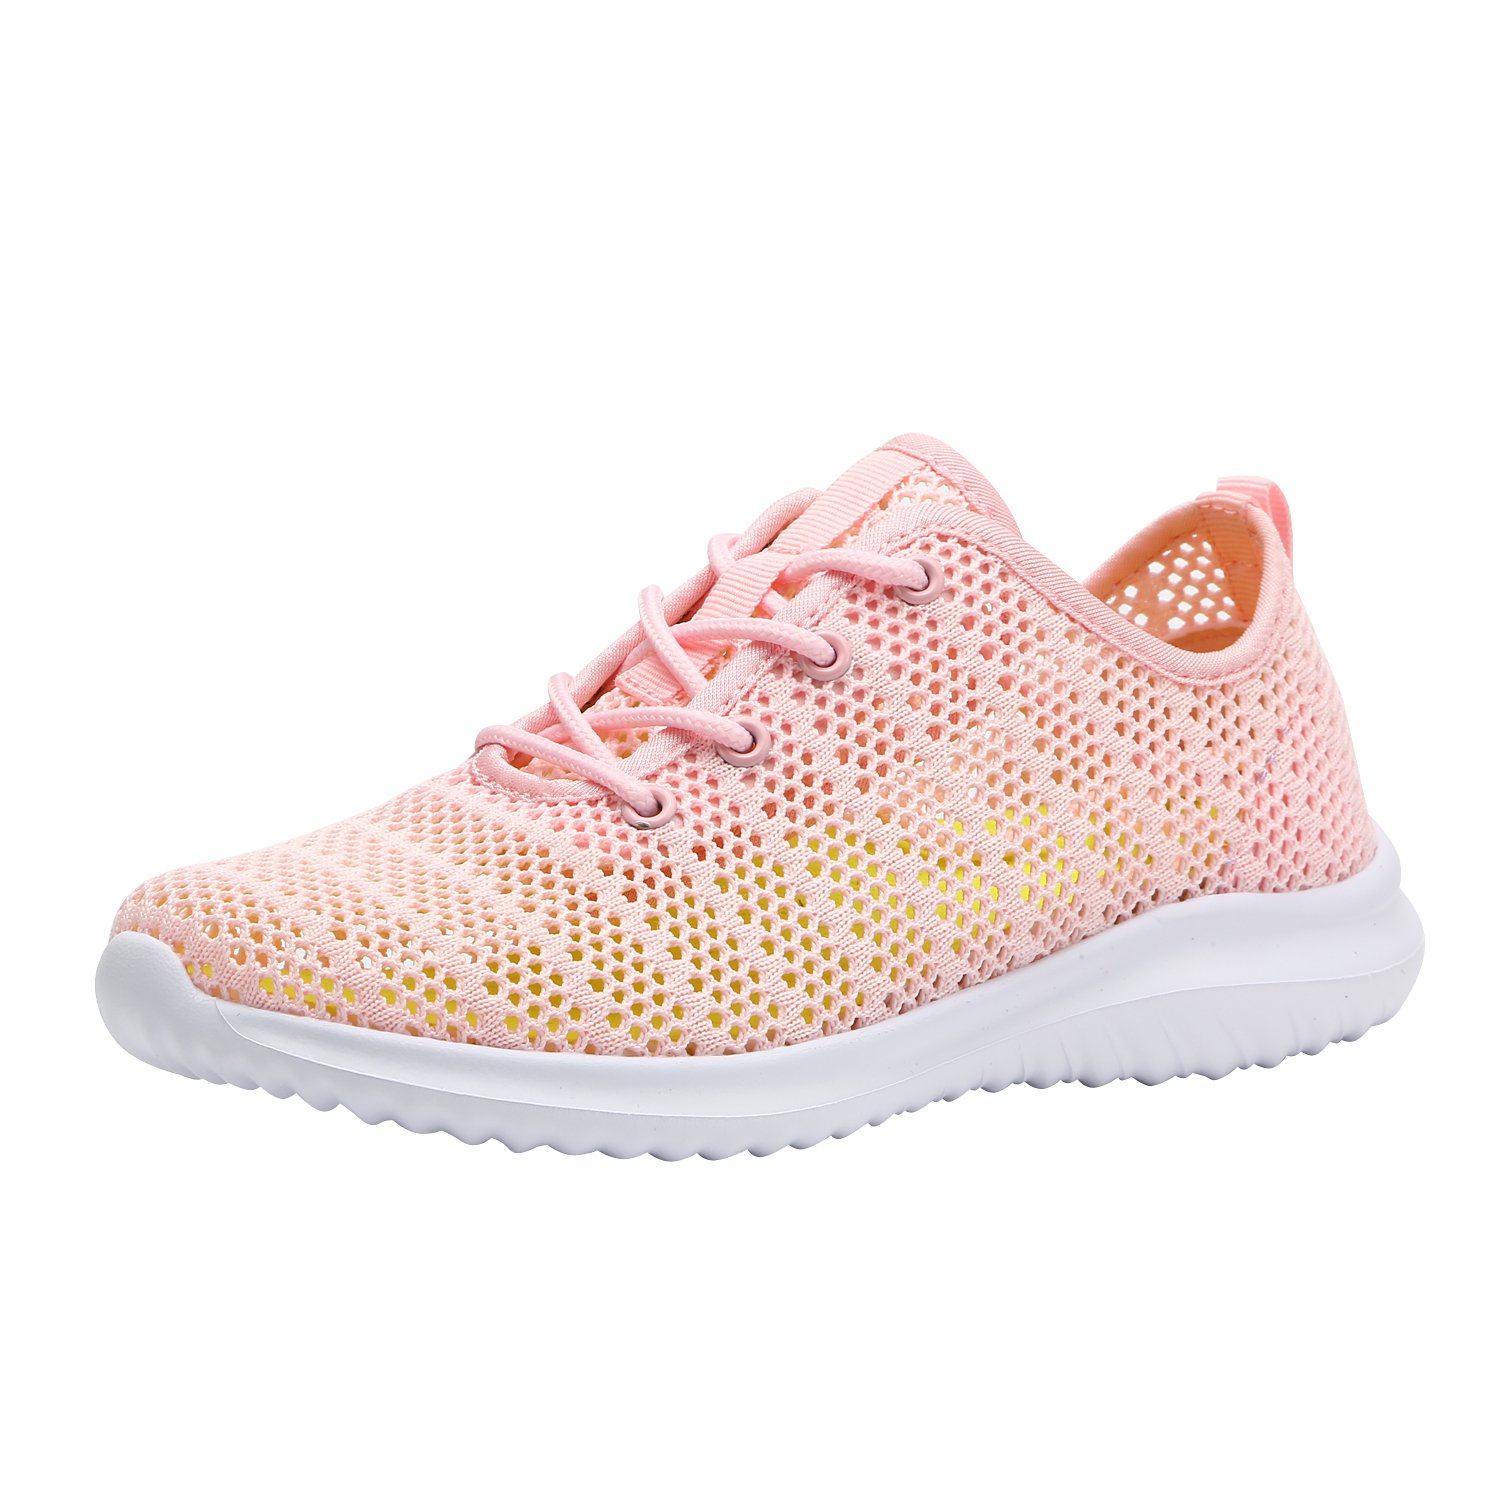 c7604fdaecb Galleon - YILAN Women s Fashion Hollow-Out Sneakers Breathable Sport Shoes  (10 B(M) US